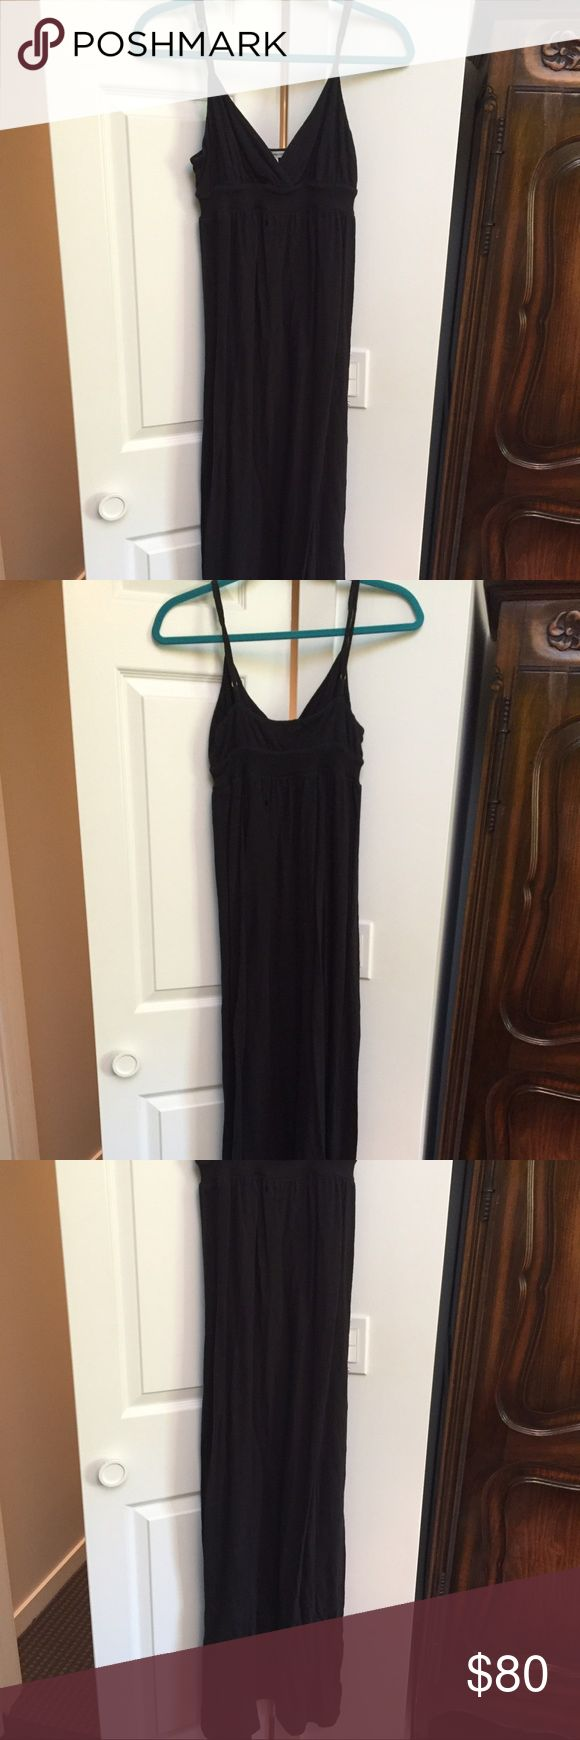 James Perse Black Cami Maxi Dress Versatile long black James Perse maxi dress with soft fabric and v neckline with adjustable self fabric straps James Perse Dresses Maxi